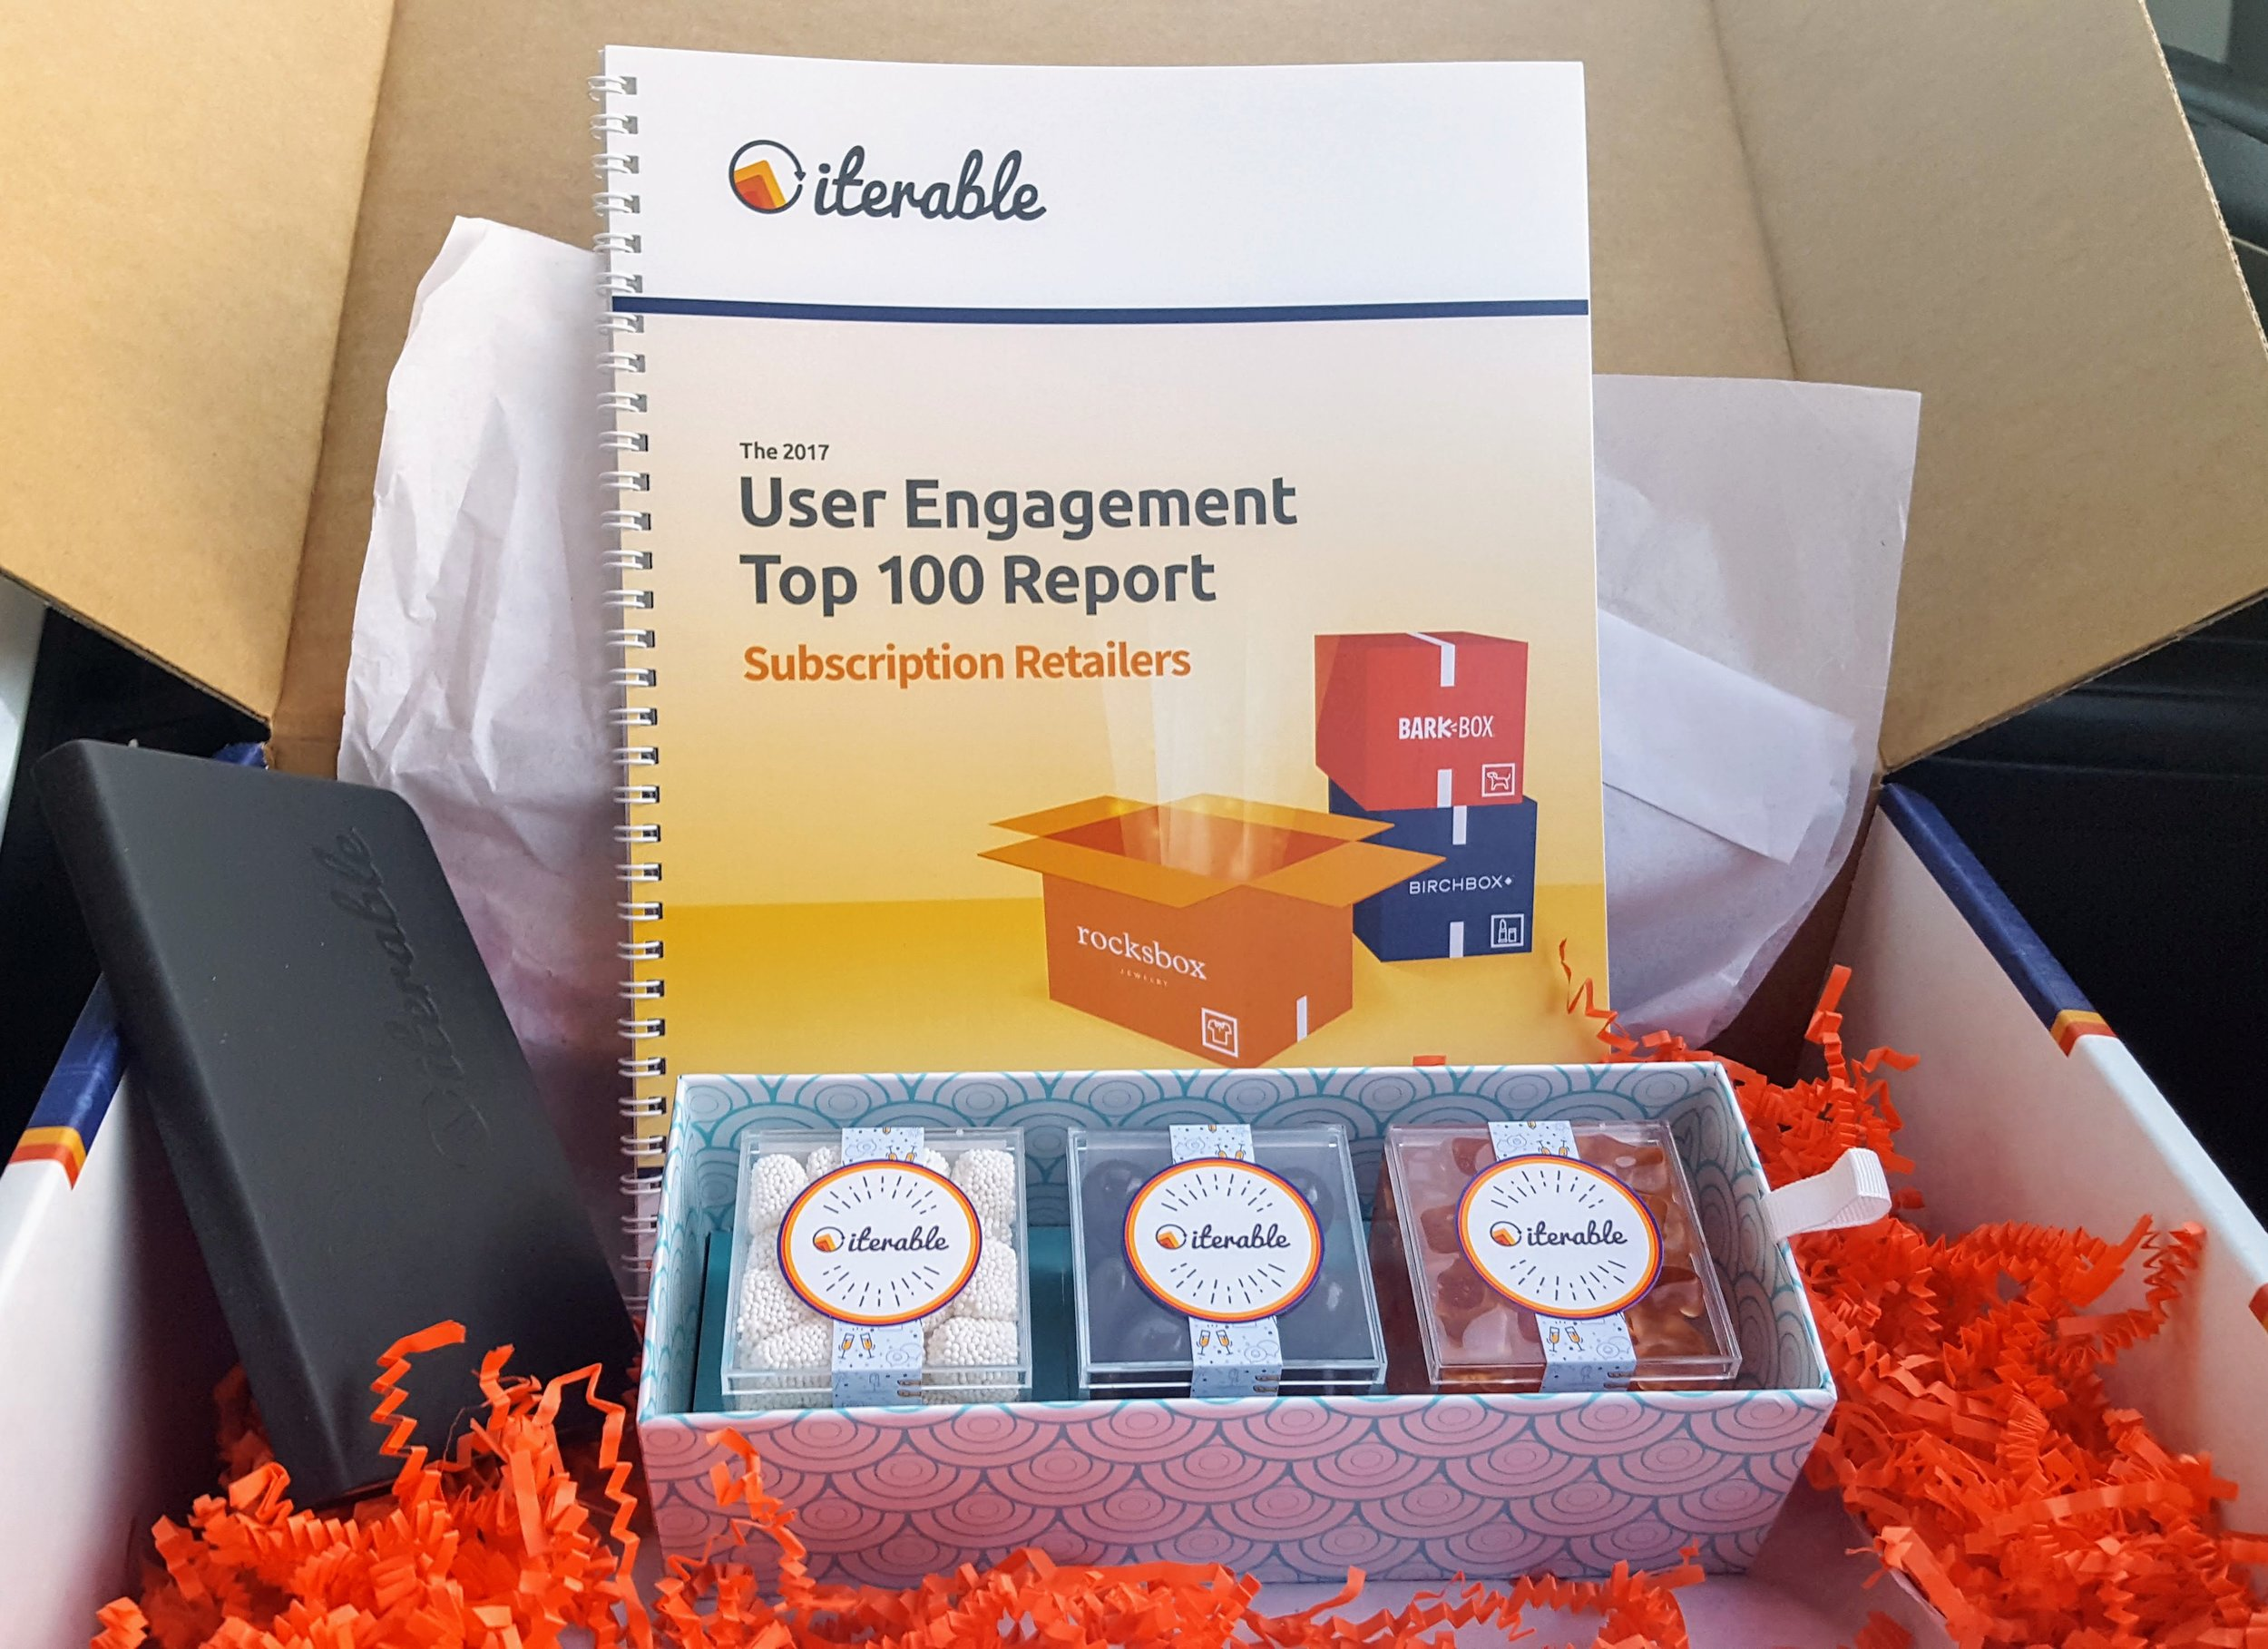 Direct Mail - We ran an integrated direct mail campaign that contained a beautifully branded box,personalized letter from the account executive, custom Sugarfina candies, and additional branded swag. We coordinated this with a 7 step